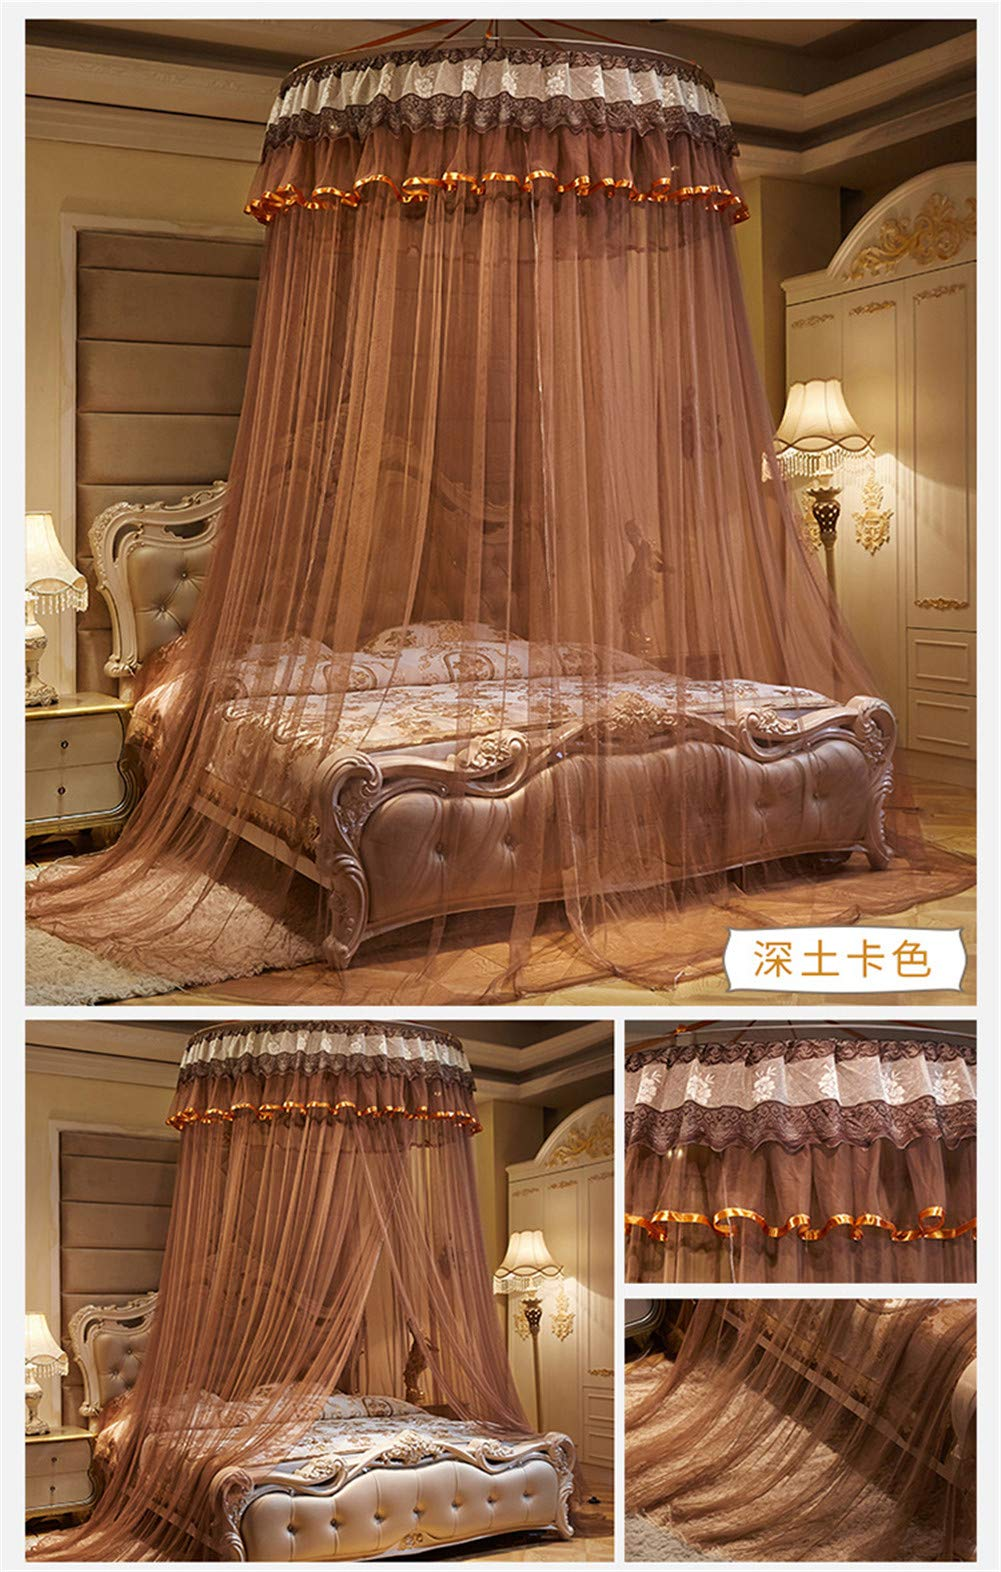 XDWN Mosquito Net Round Lace Dome Bed Canopy Netting Princess Fashion for King Queen Double Twin Size Bed,Brown by XDWN (Image #3)